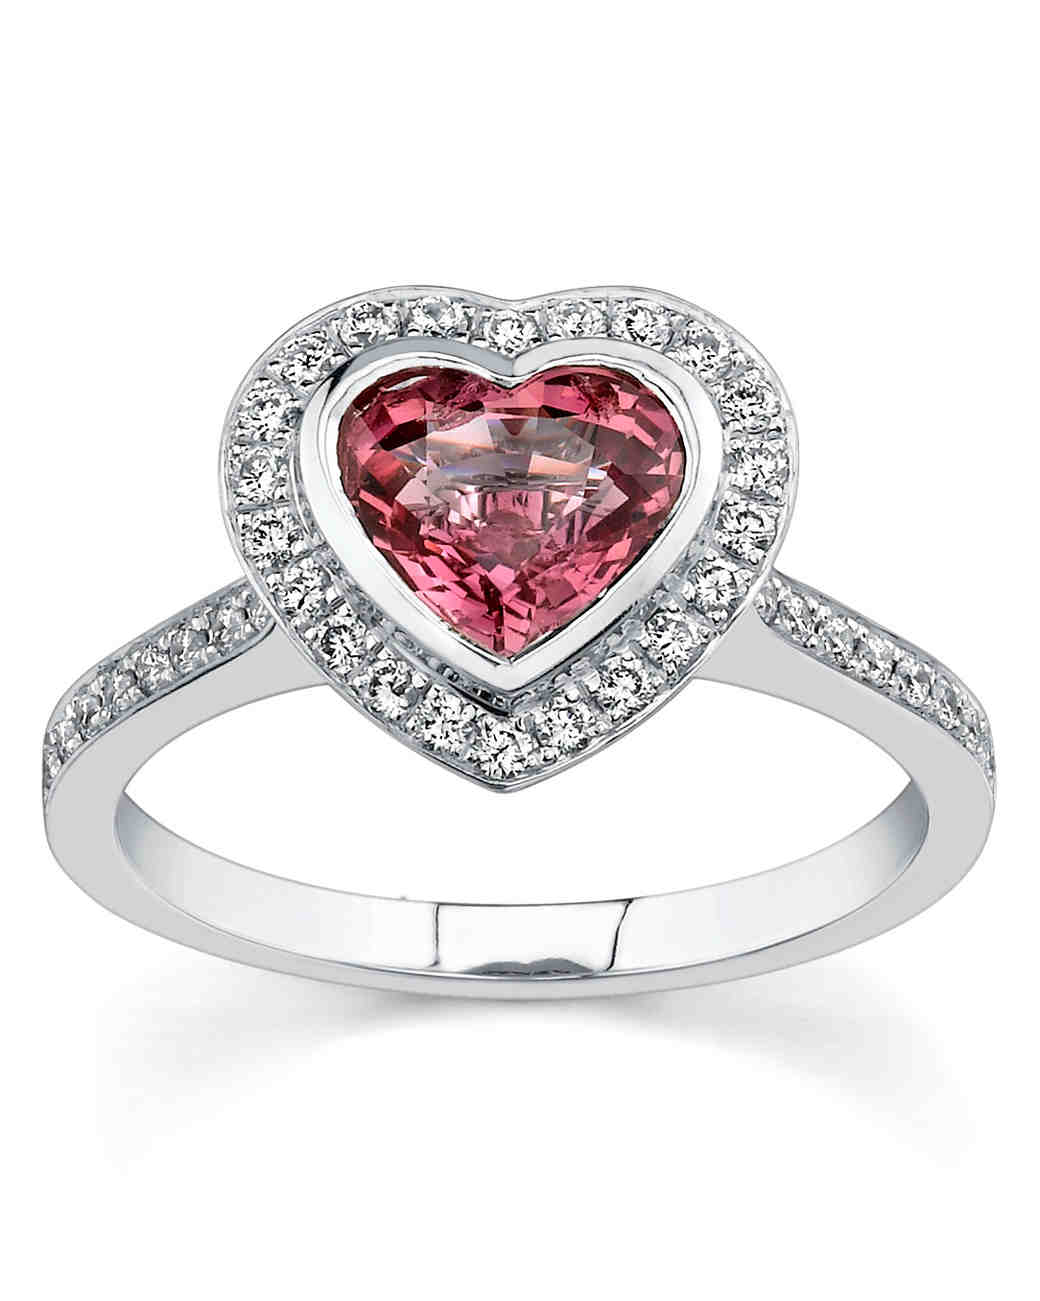 ring sapphire claddagh com wedding products rings cut promise pink silver heart niam